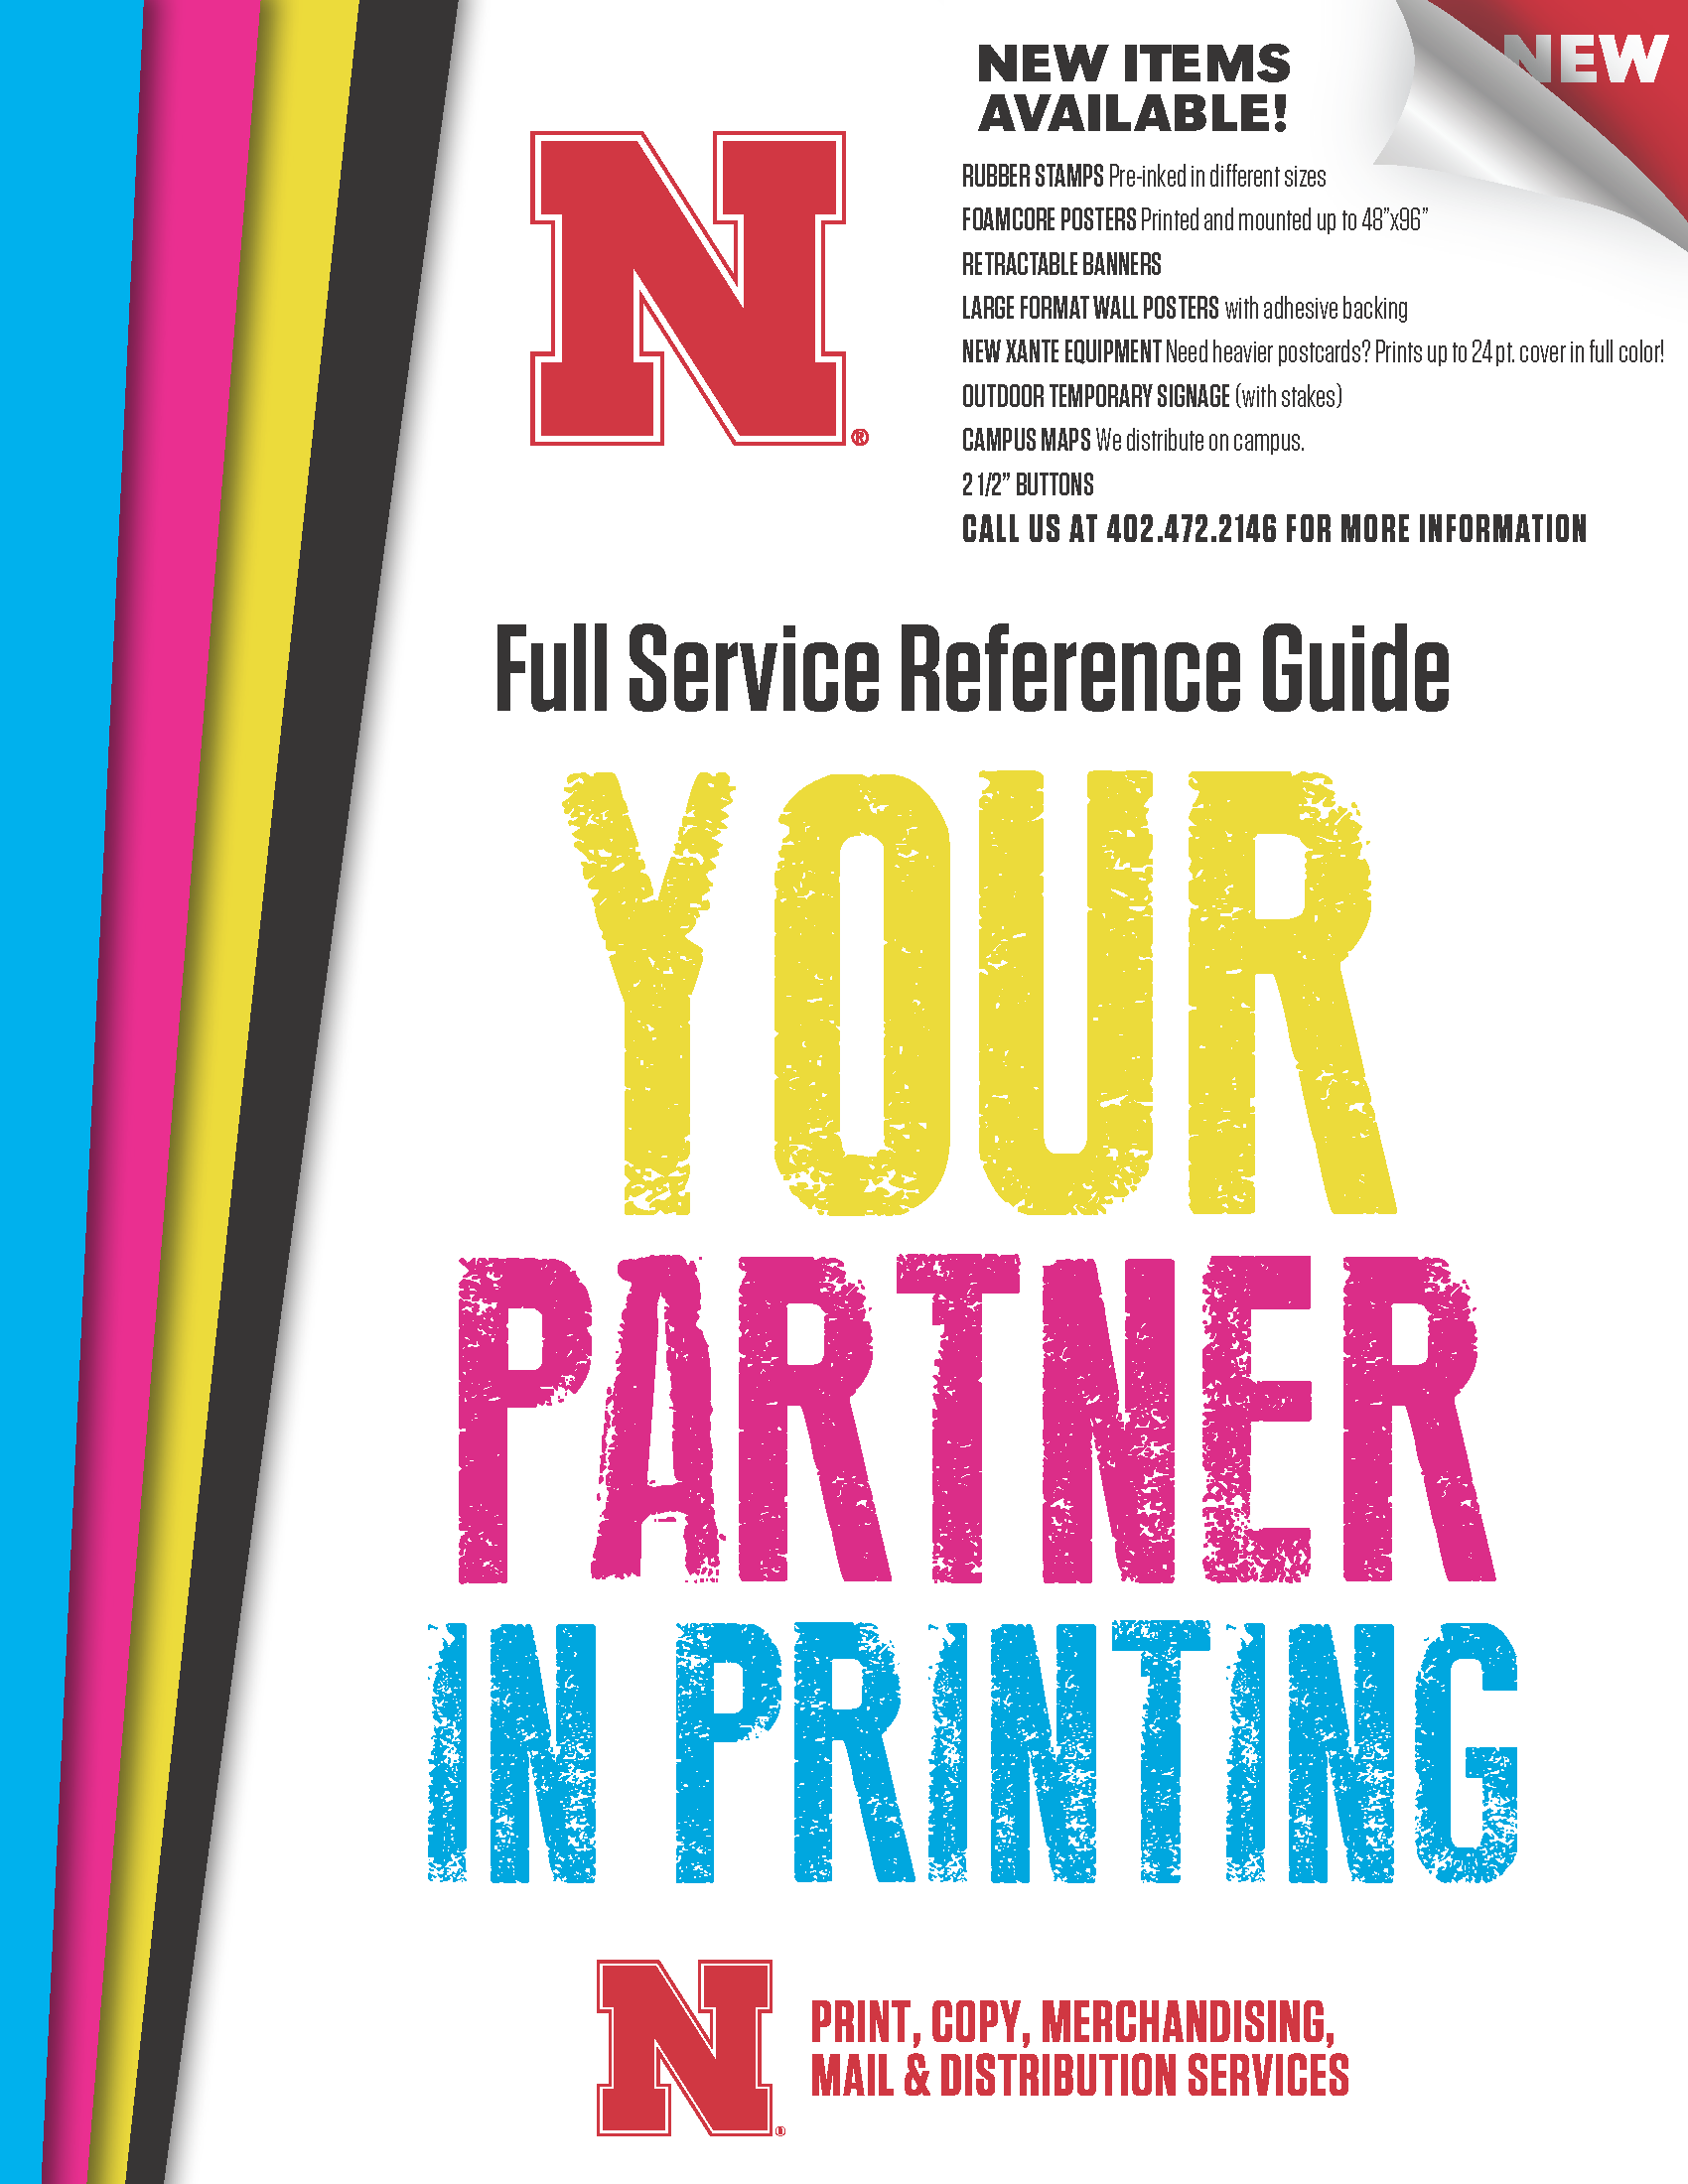 poster image of the reference guide cover